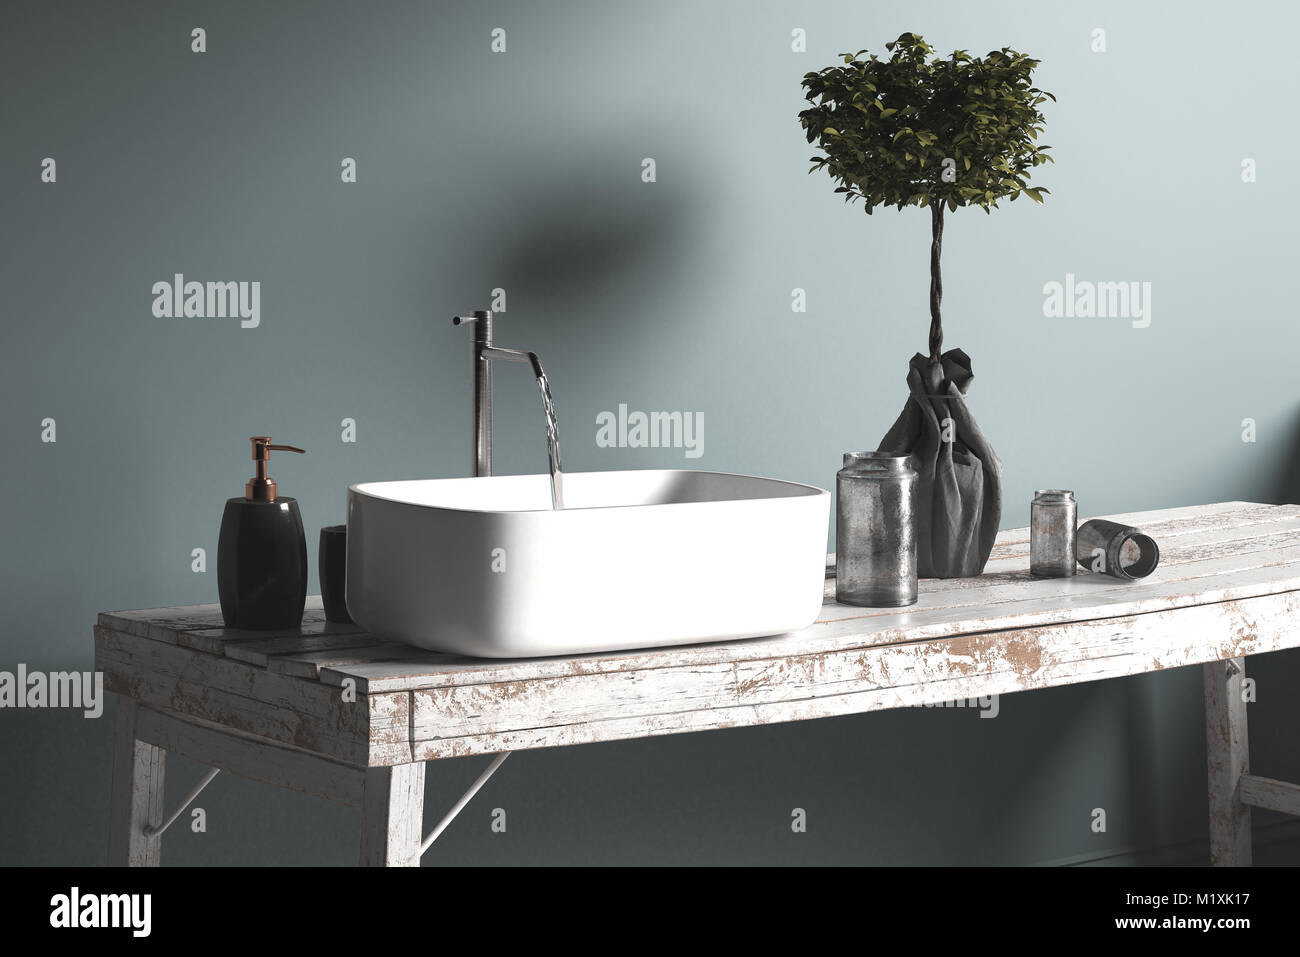 Rustic simple bathroom hand basin or vanity with running water from ...